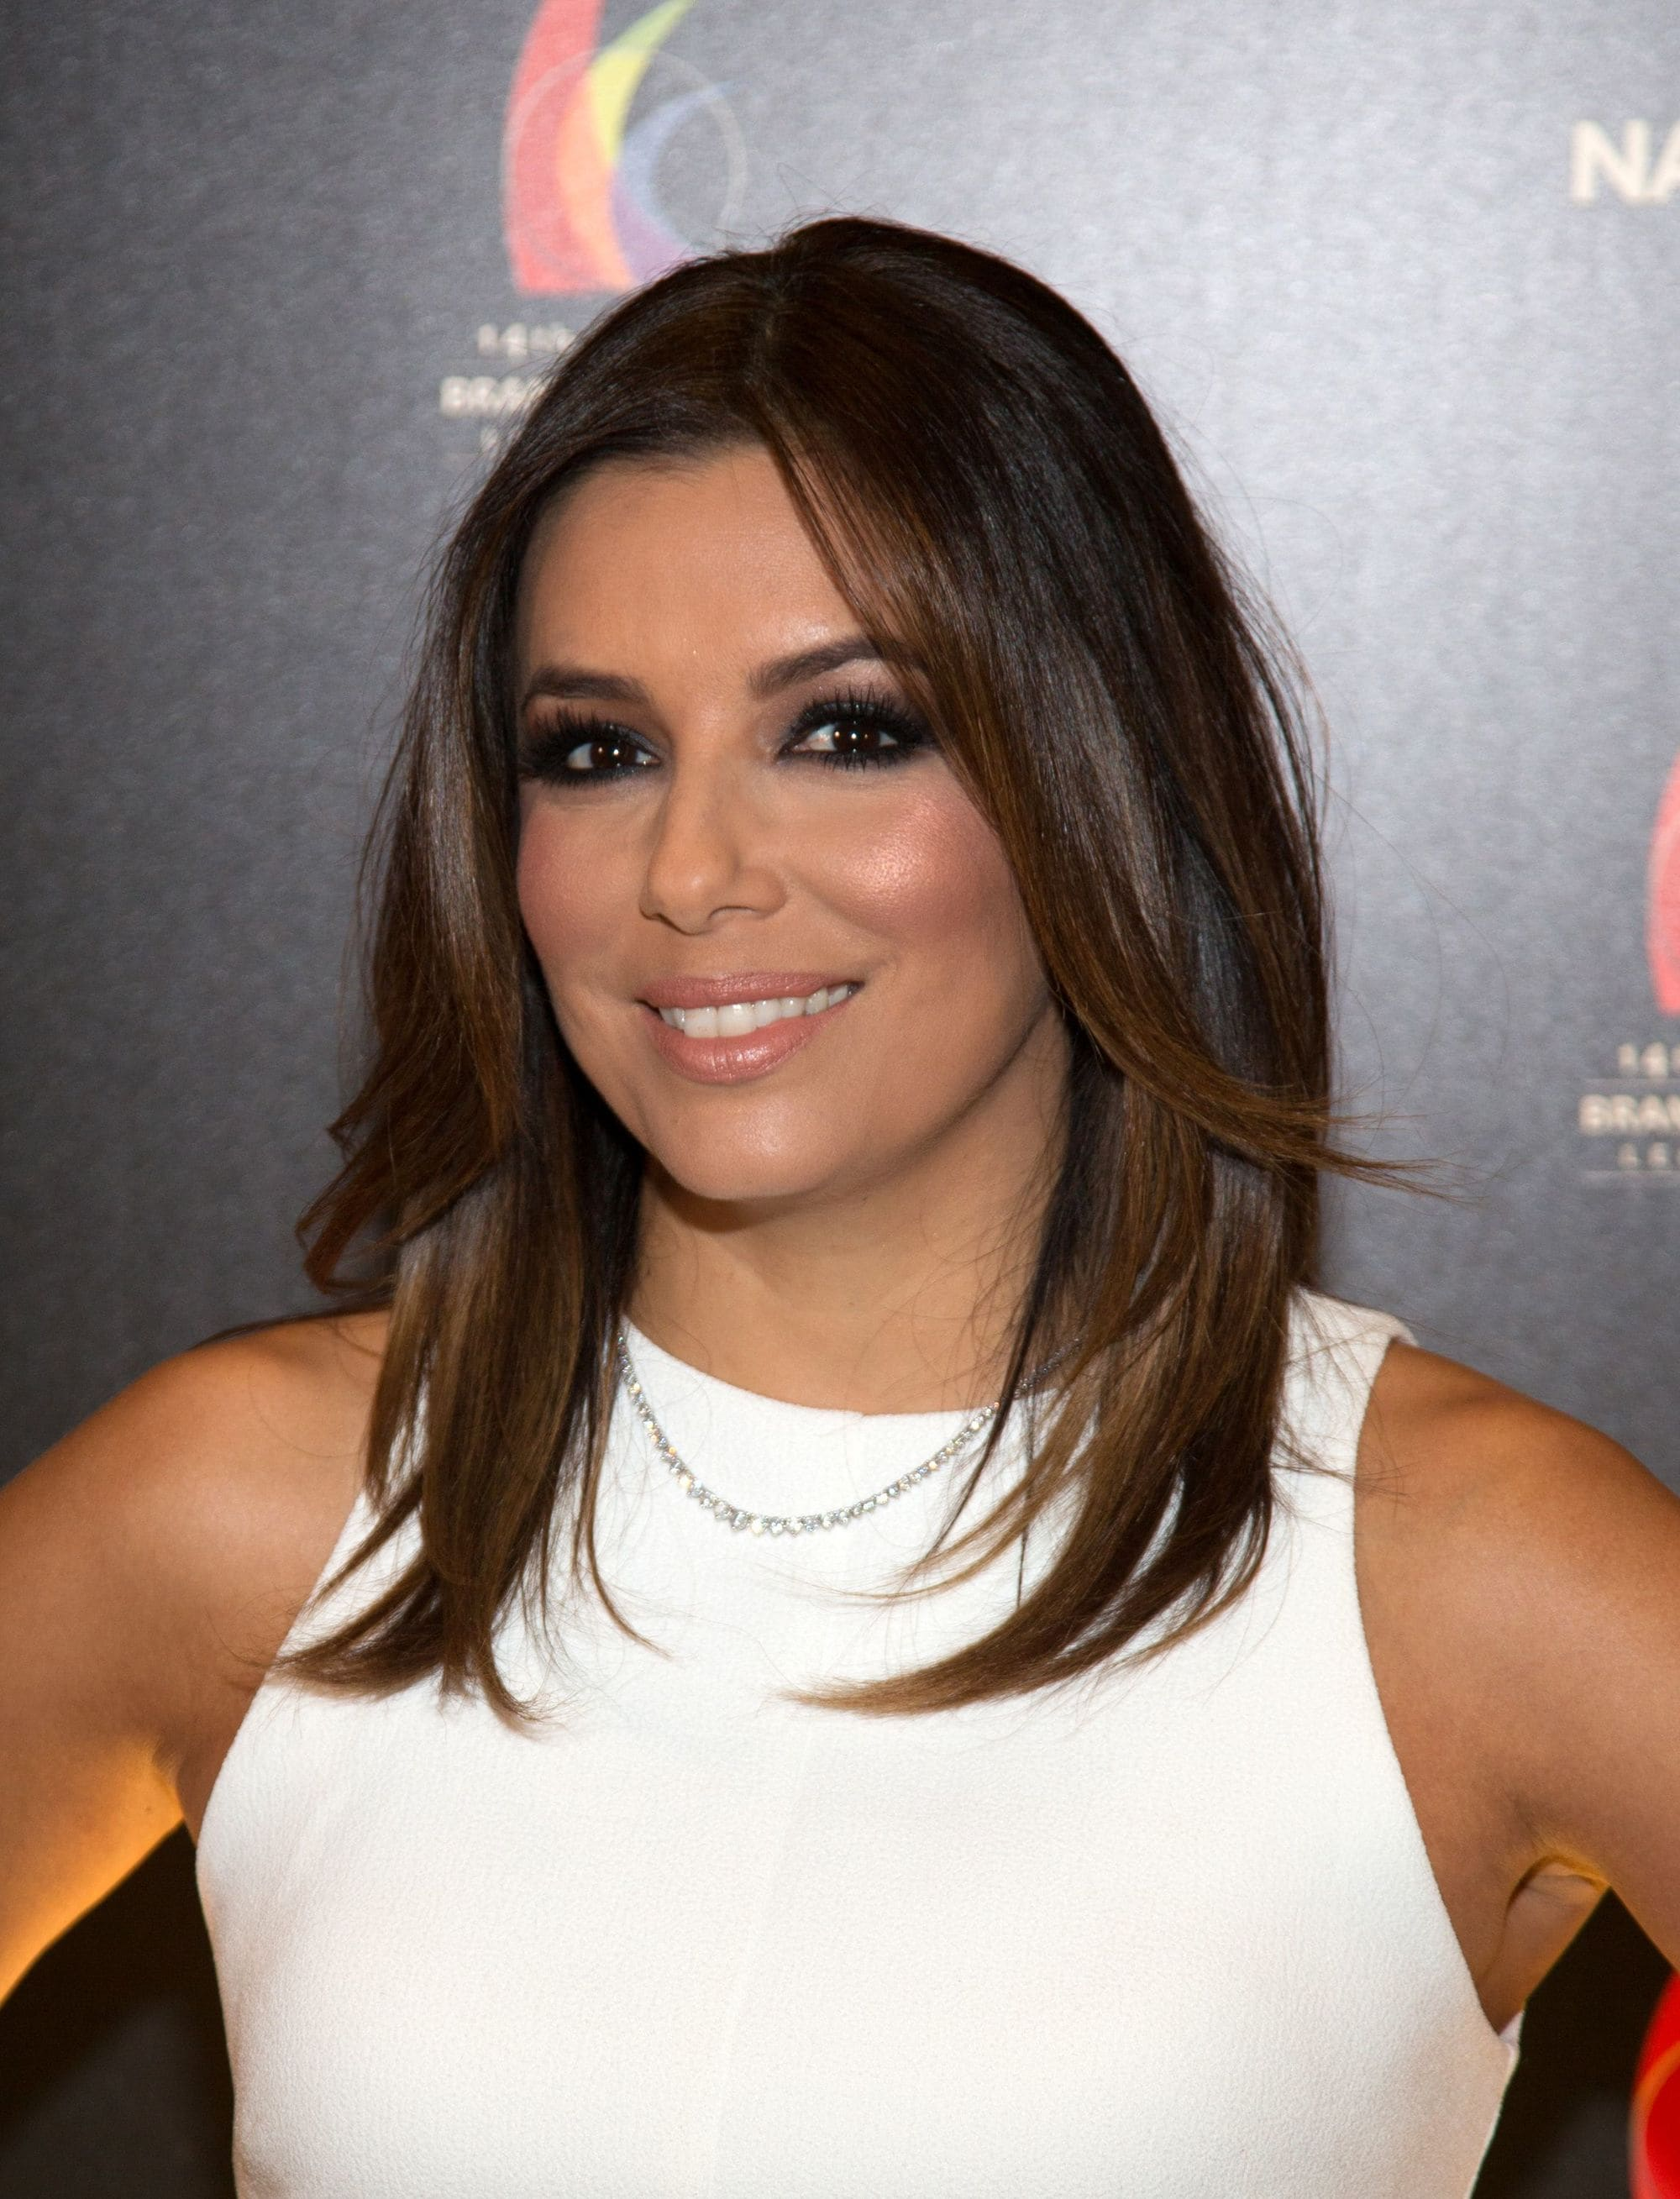 Shoulder length layered hair: actress eva longoria with shoulder length brunette hair and flicky layers